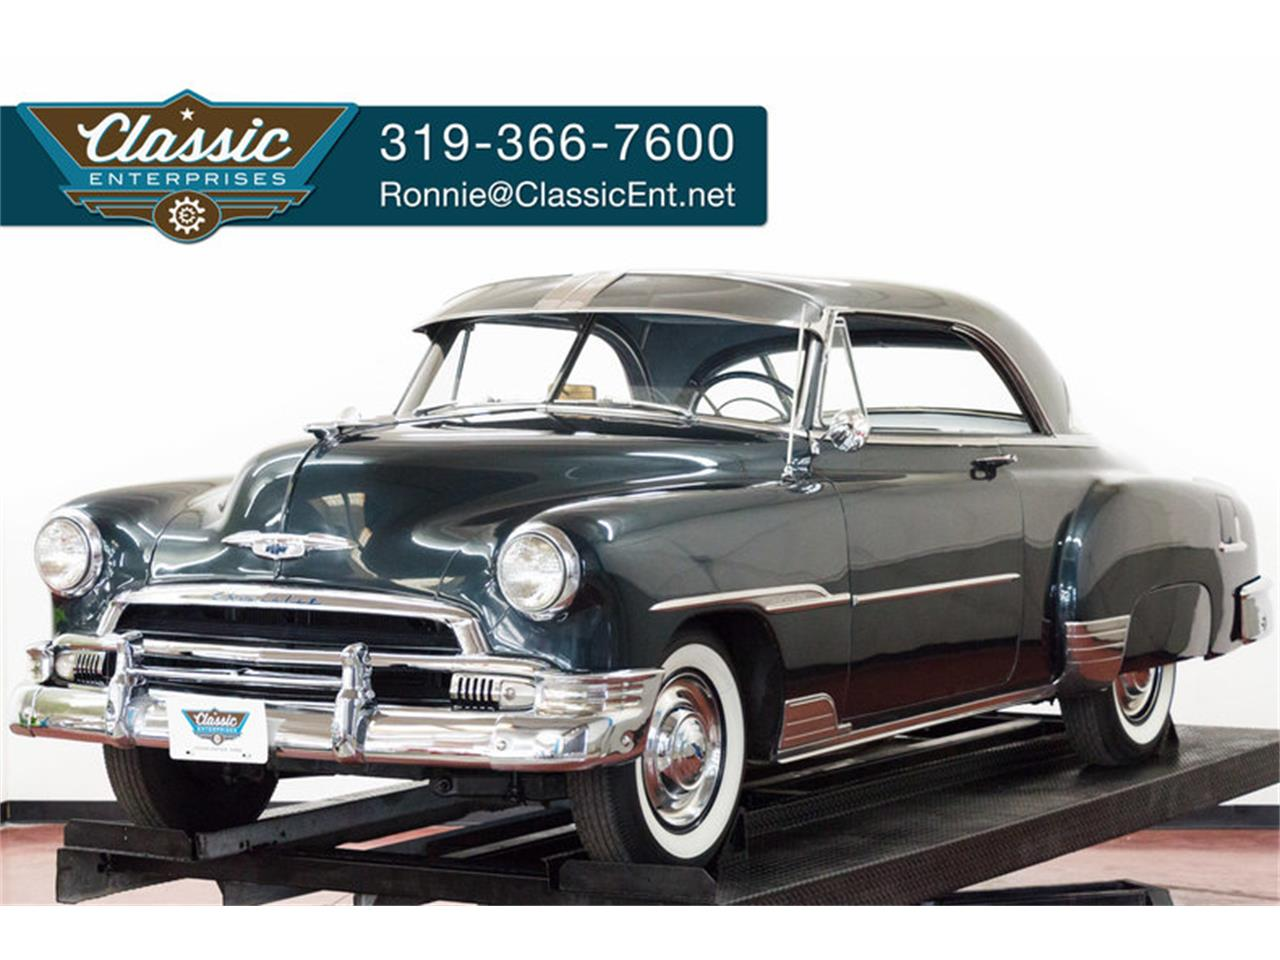 1951 Chevrolet Bel Air For Sale Cc 804058 4 Door Large Picture Of 51 H8ey